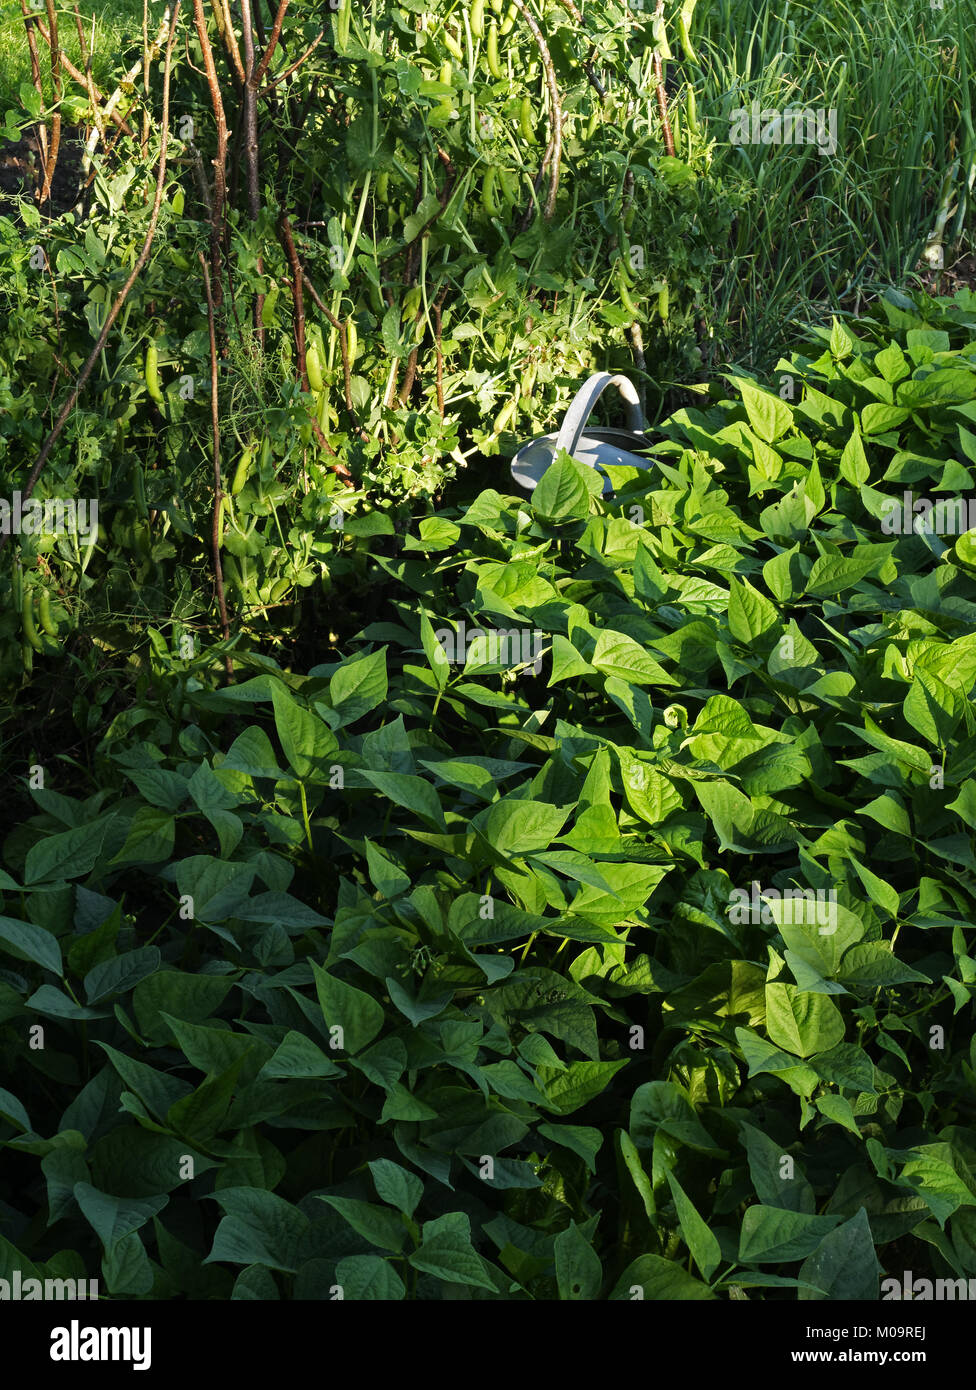 Vegetable garden in june, bed of green bean and peas (Suzanne's vegetable garden, Le Pas, Mayenne, France). - Stock Image